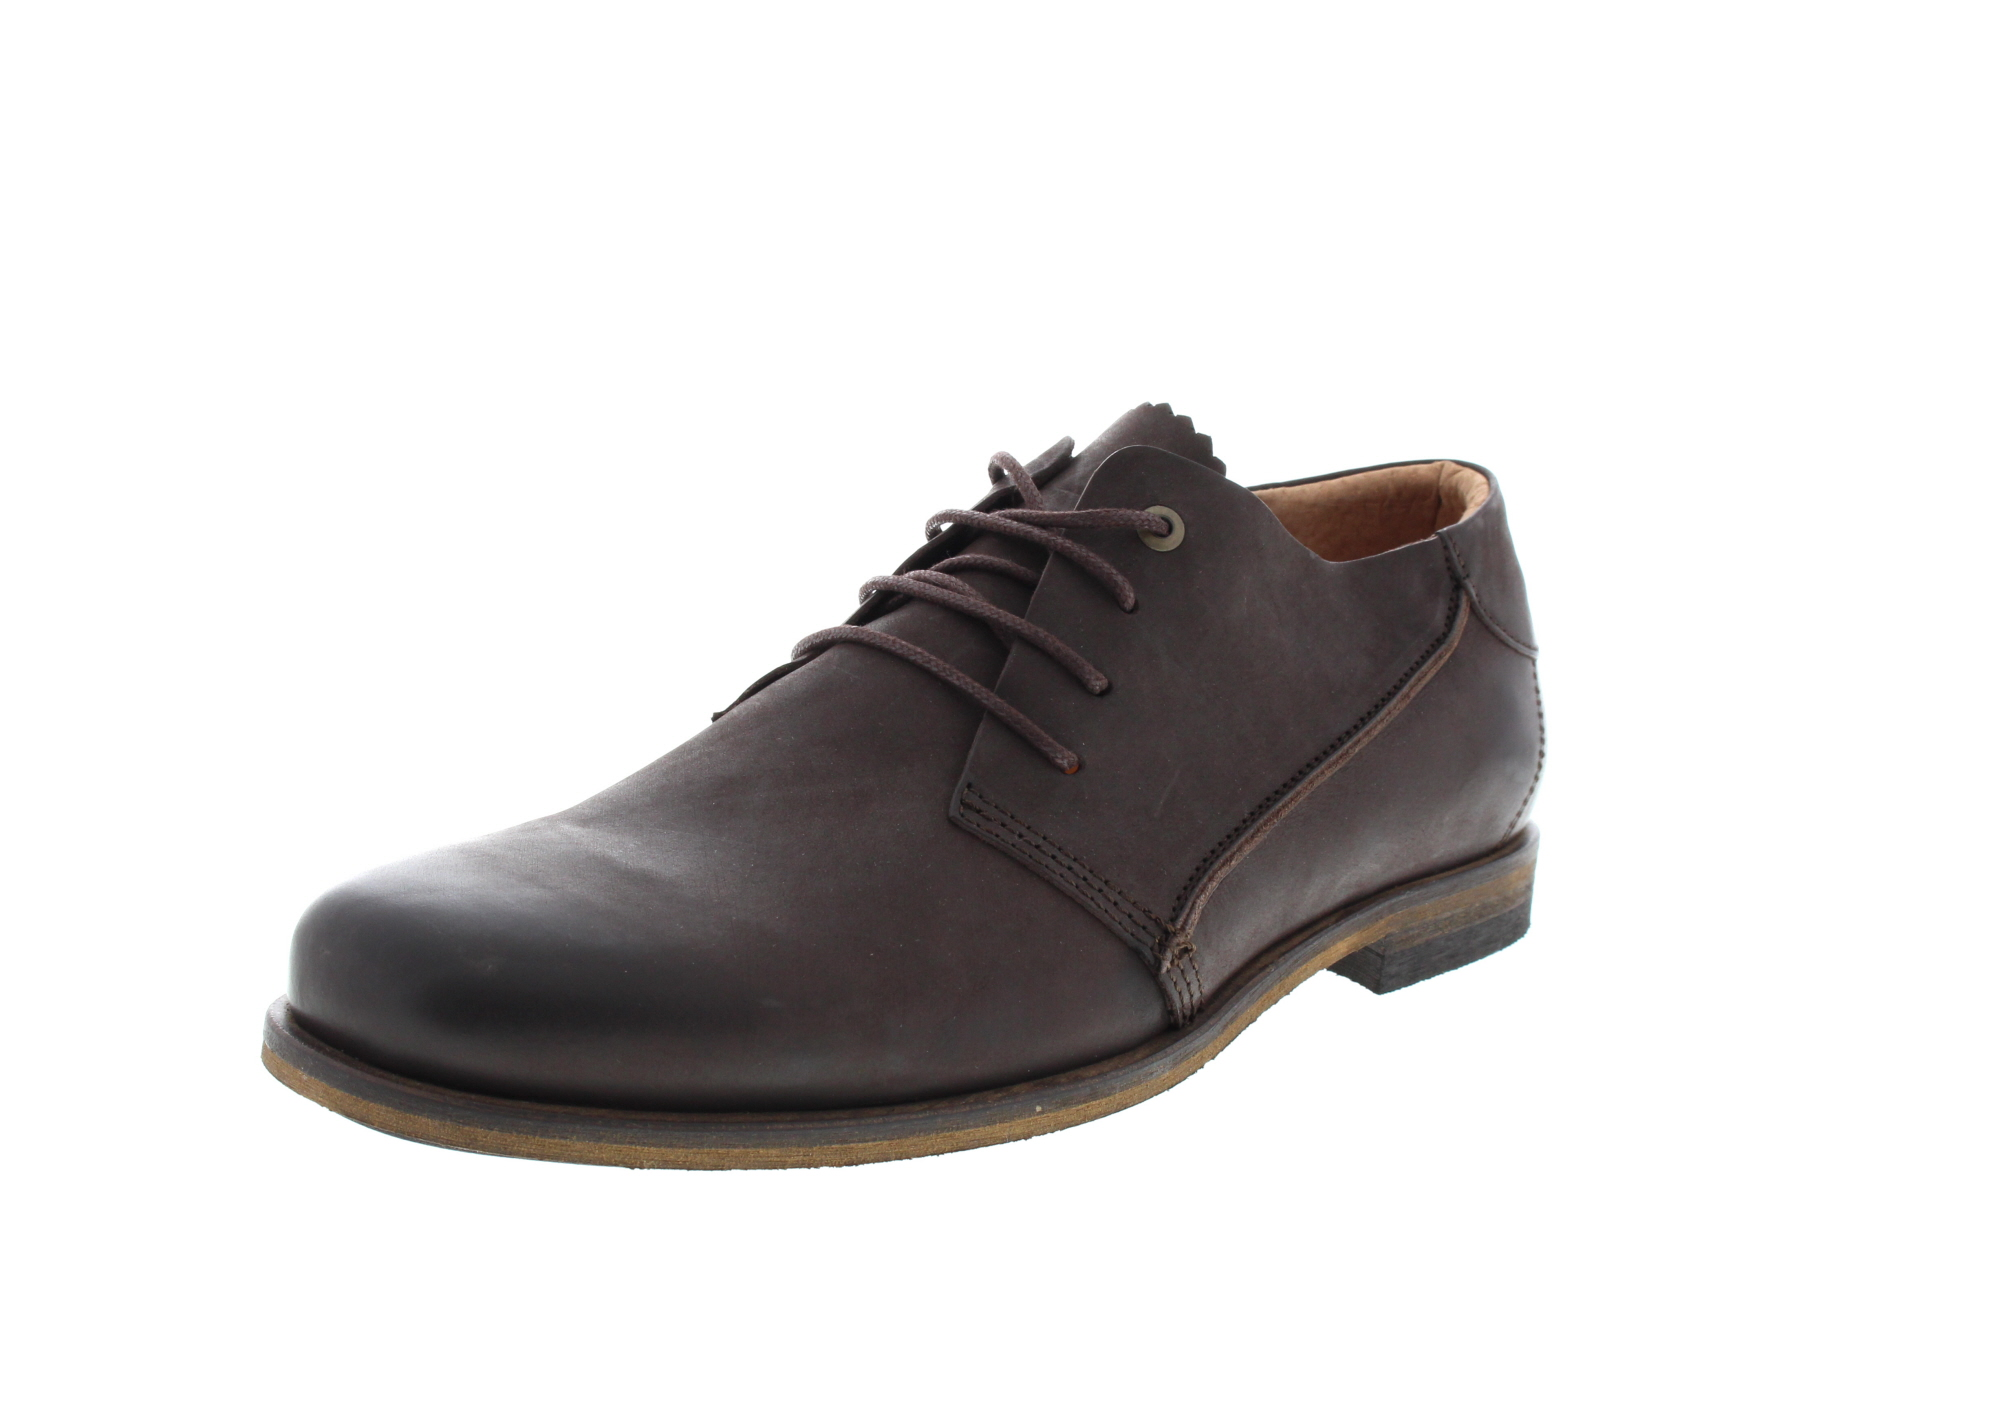 HAGHE by HUB Herrenschuhe - MATTFIELD - dark brown_0